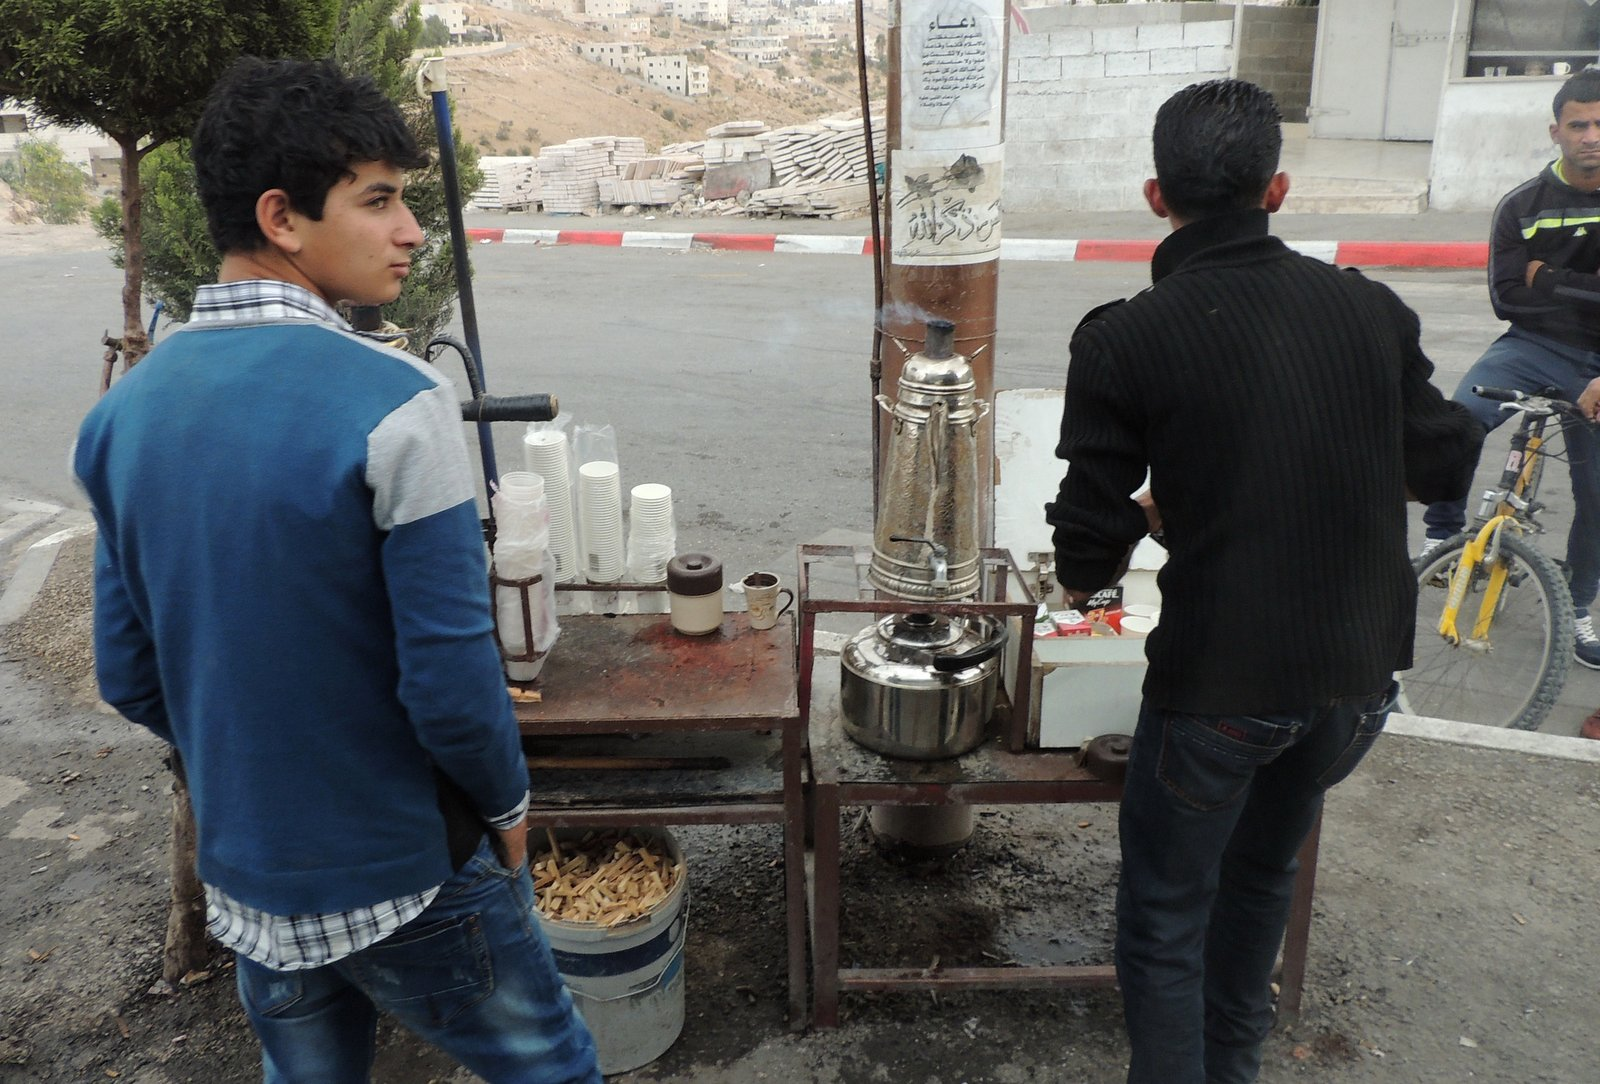 coffee and tea to go -Palestine style